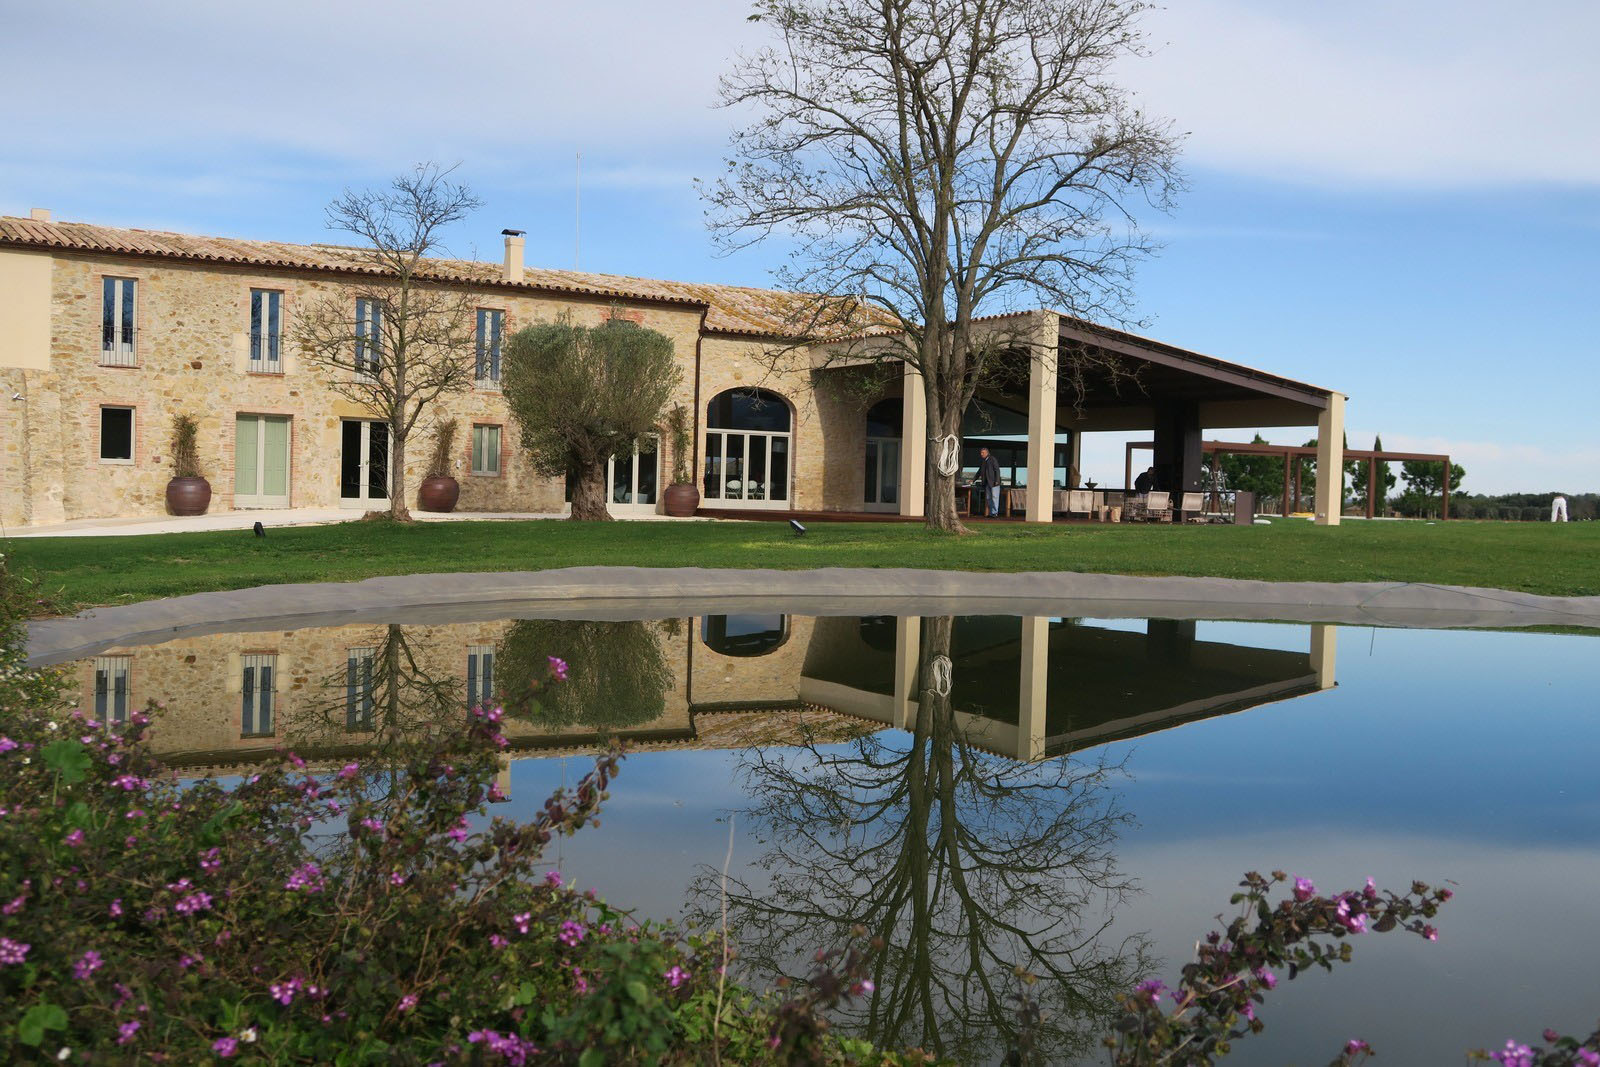 An ancient stone manor transformed into a rustic for Mediterranean country house